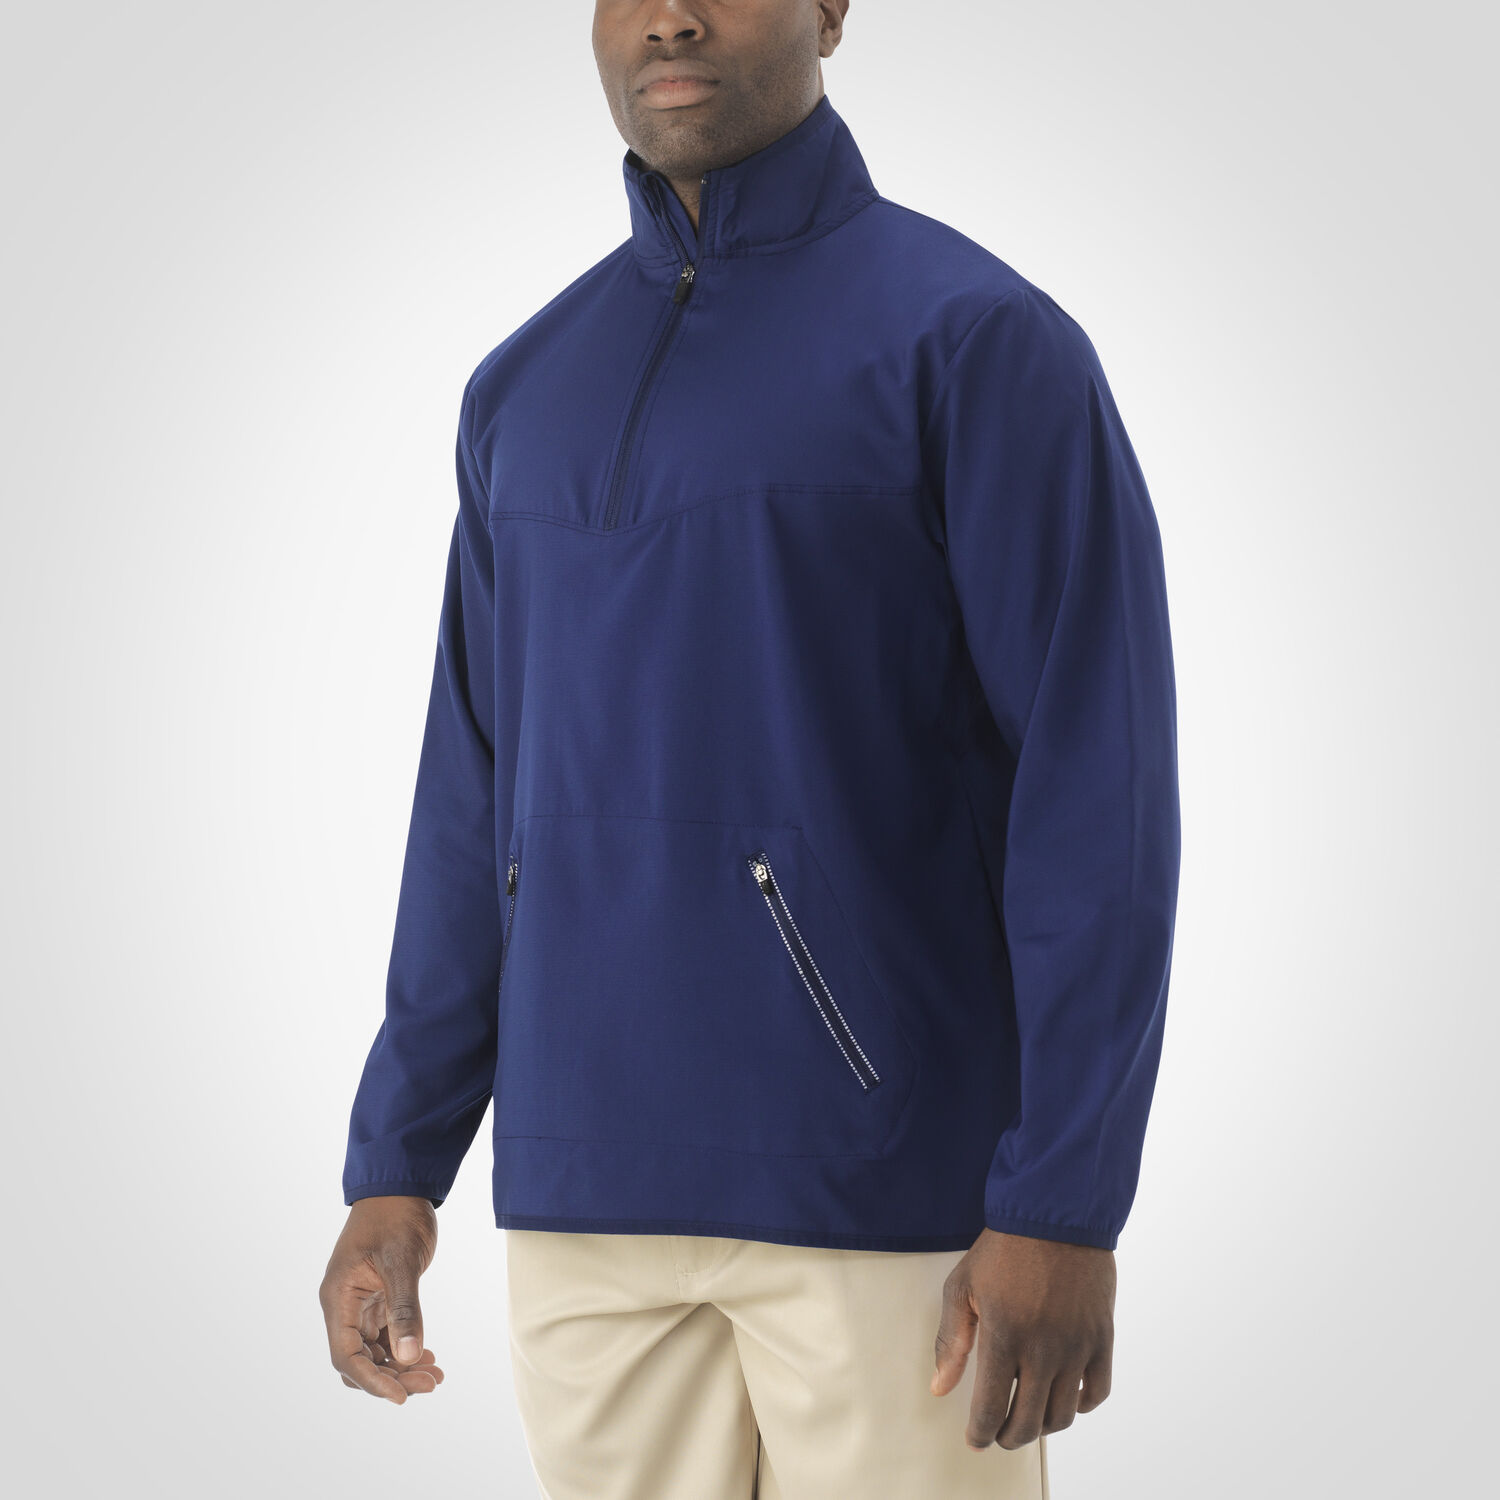 Men's Woven 1/4 Zip Pullover - Russell US | Russell Athletic